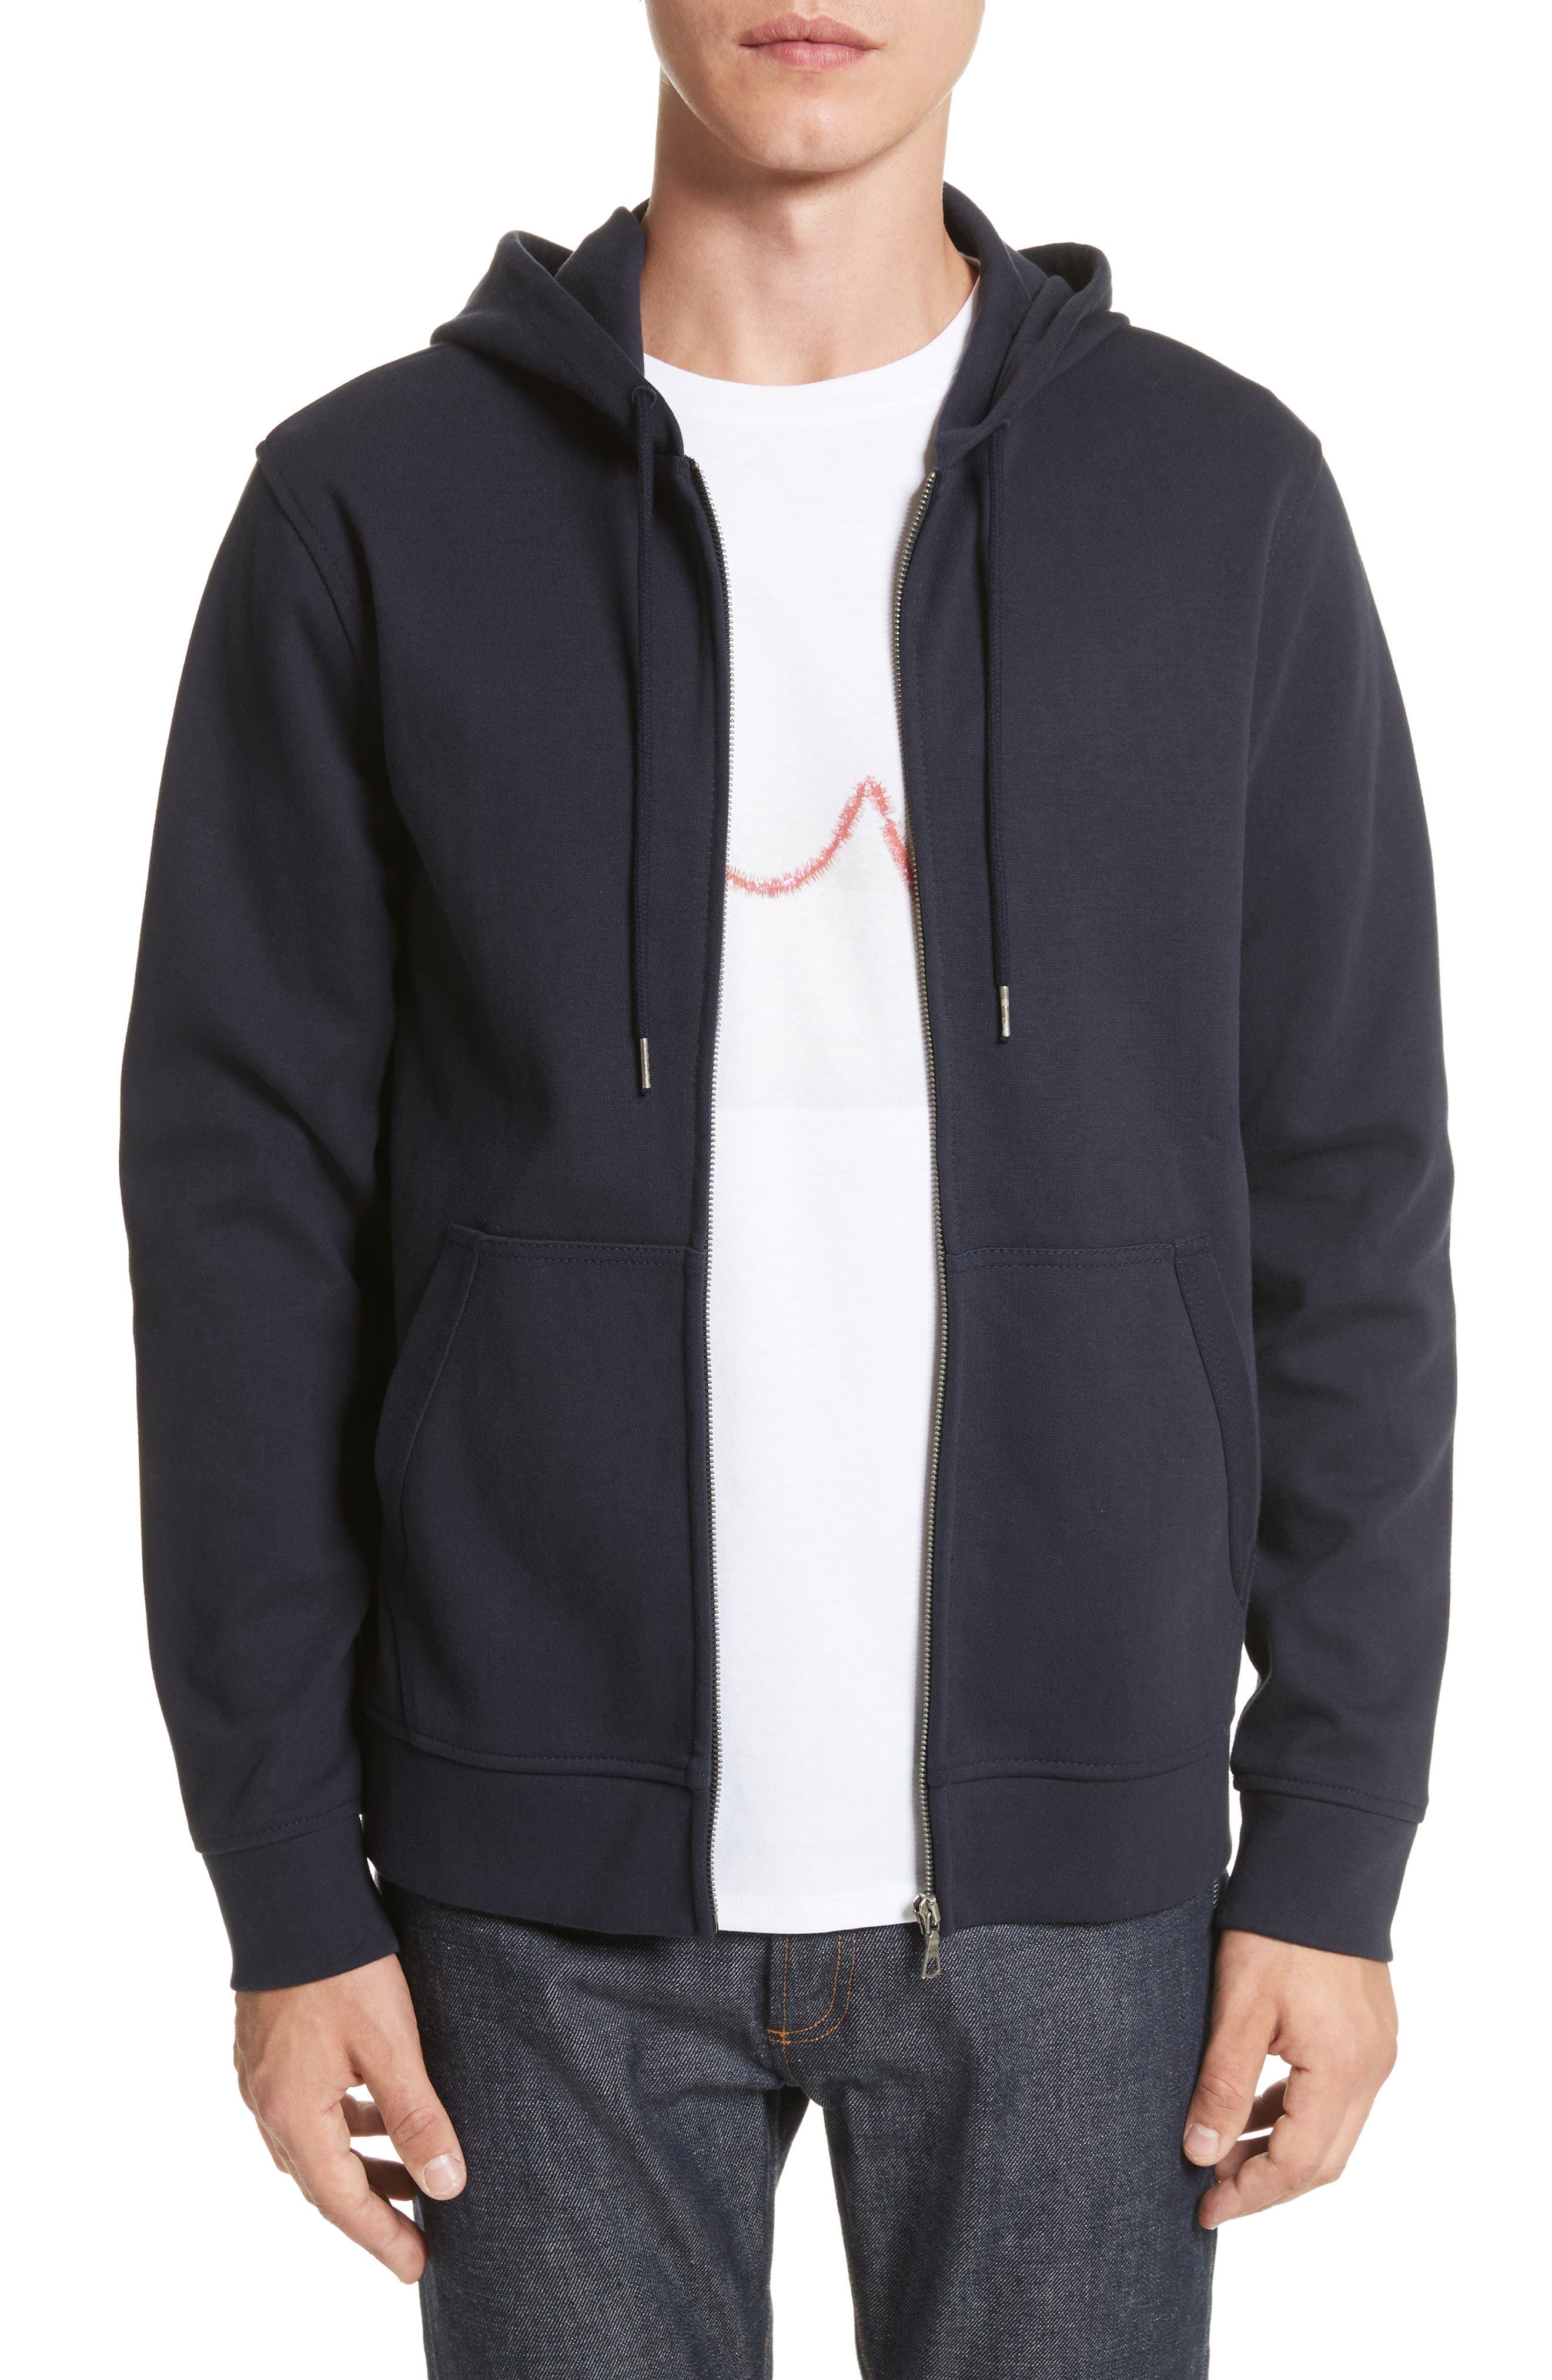 Alternate Image 1 Selected - A.P.C. Roadie Zip Hoodie